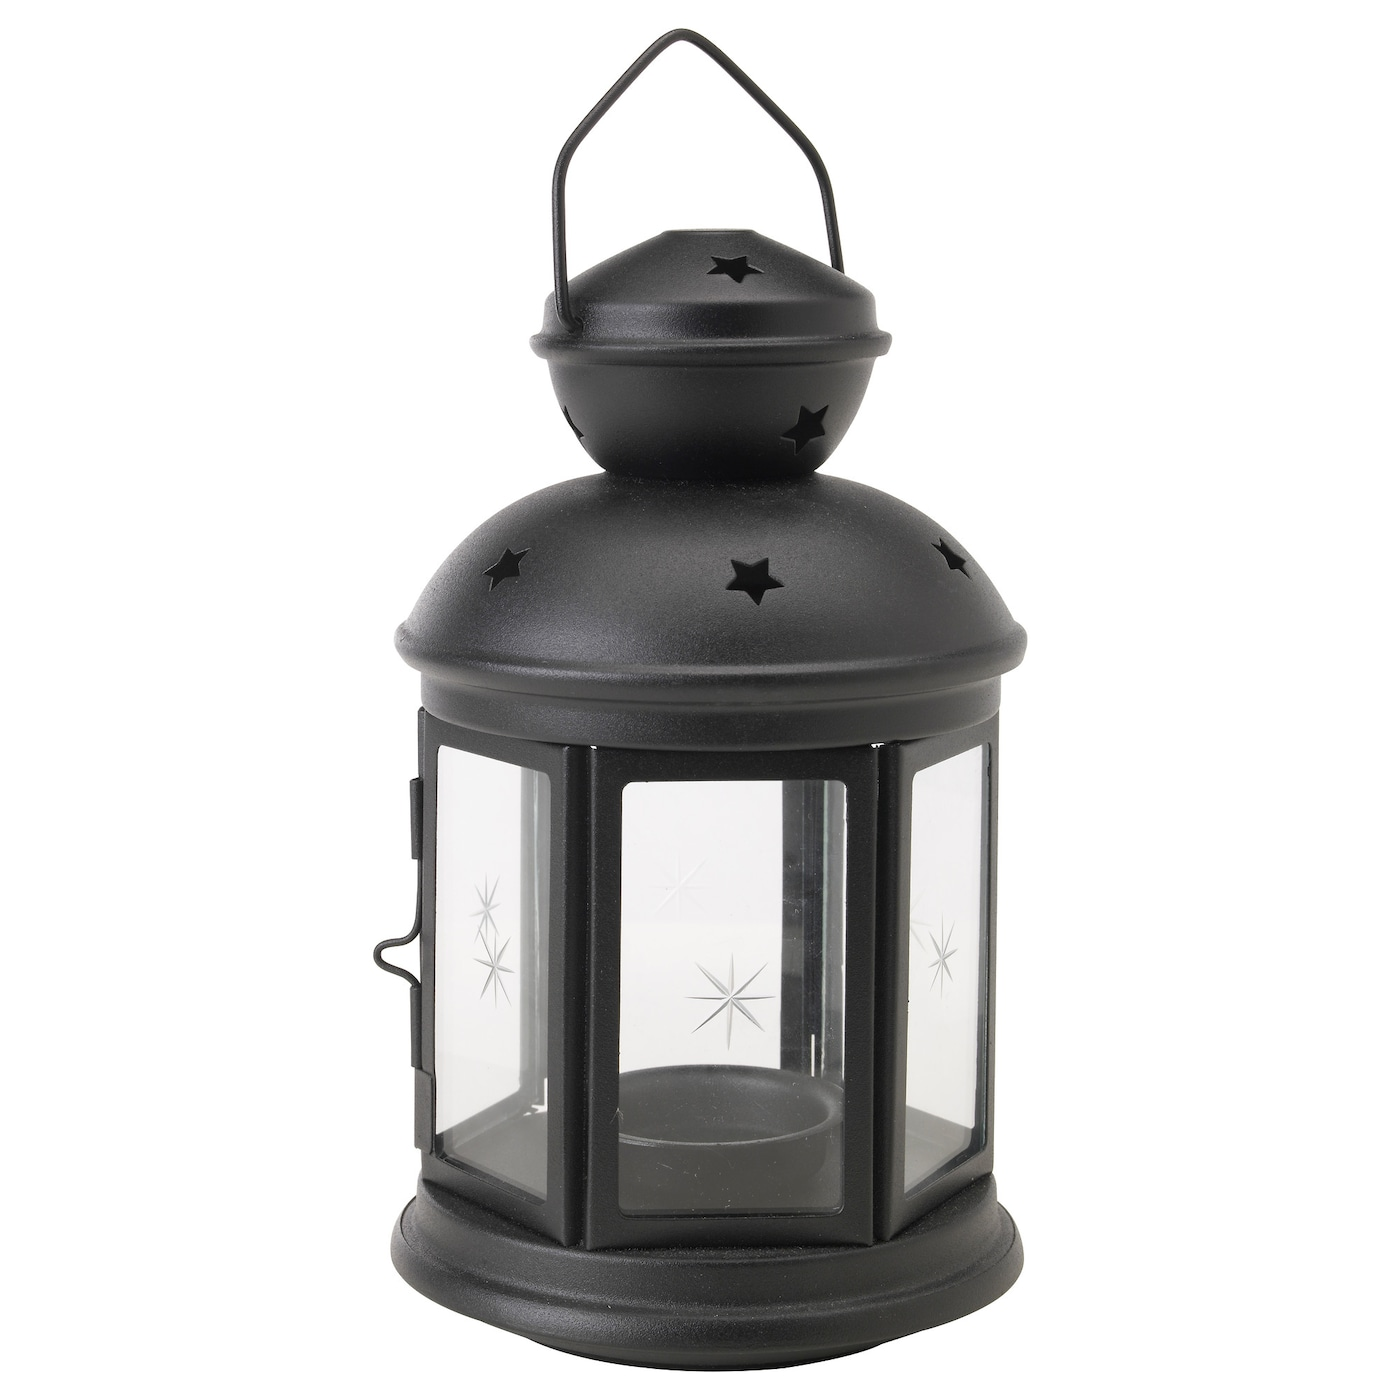 rotera lantern for tealight in outdoor black 21 cm ikea